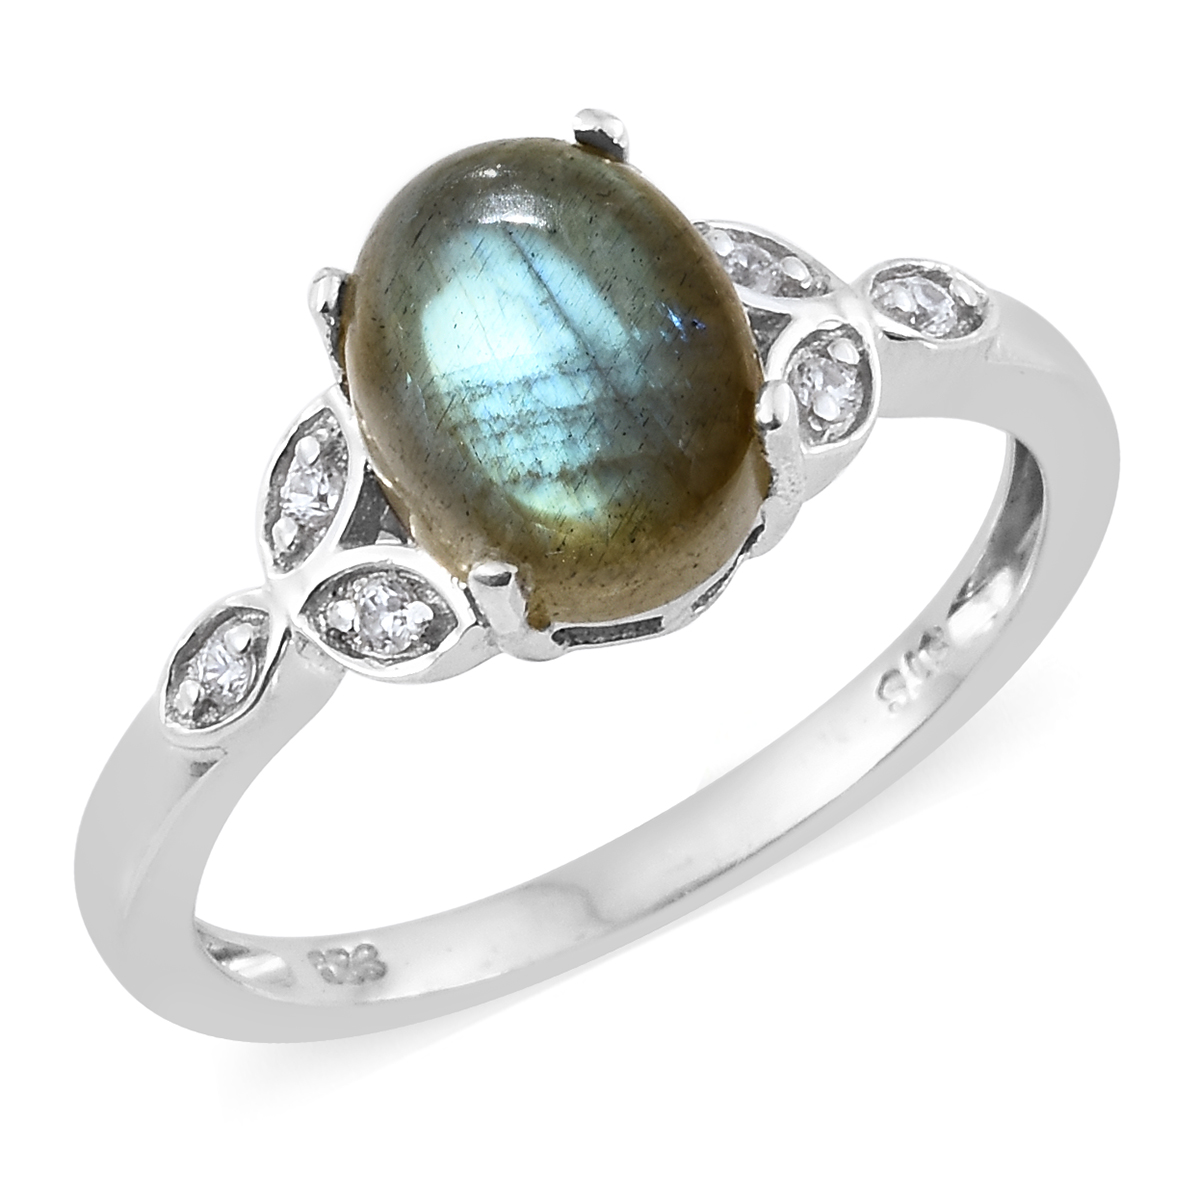 a26ef1f67b Malagasy Labradorite, Cambodian Zircon Platinum Over Sterling Silver Ring  (Size 5.0) TGW 3.39 cts. | Silver-Jewelry | Promotions | online-store |  Shop LC